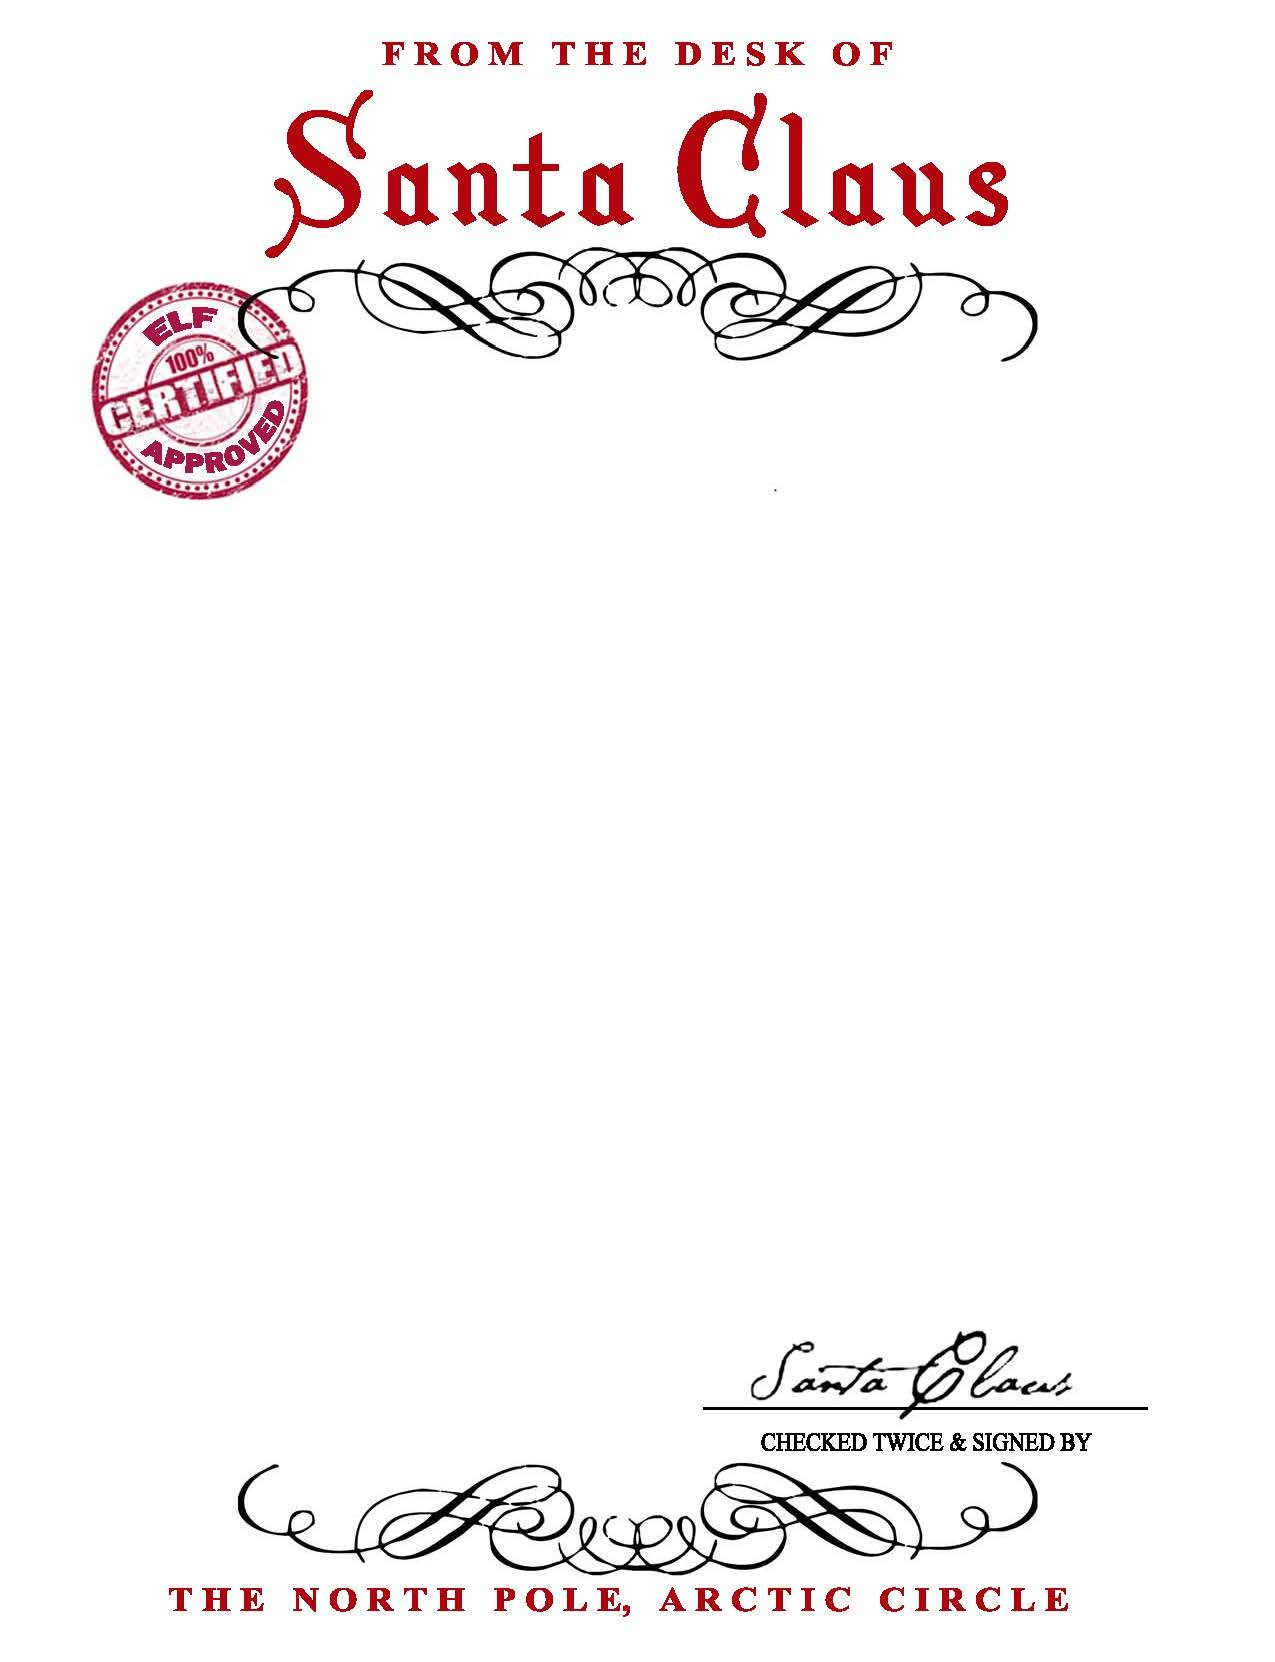 Santa claus stationary free printable click here for a free printable version of the santa claus letterhead spiritdancerdesigns Gallery